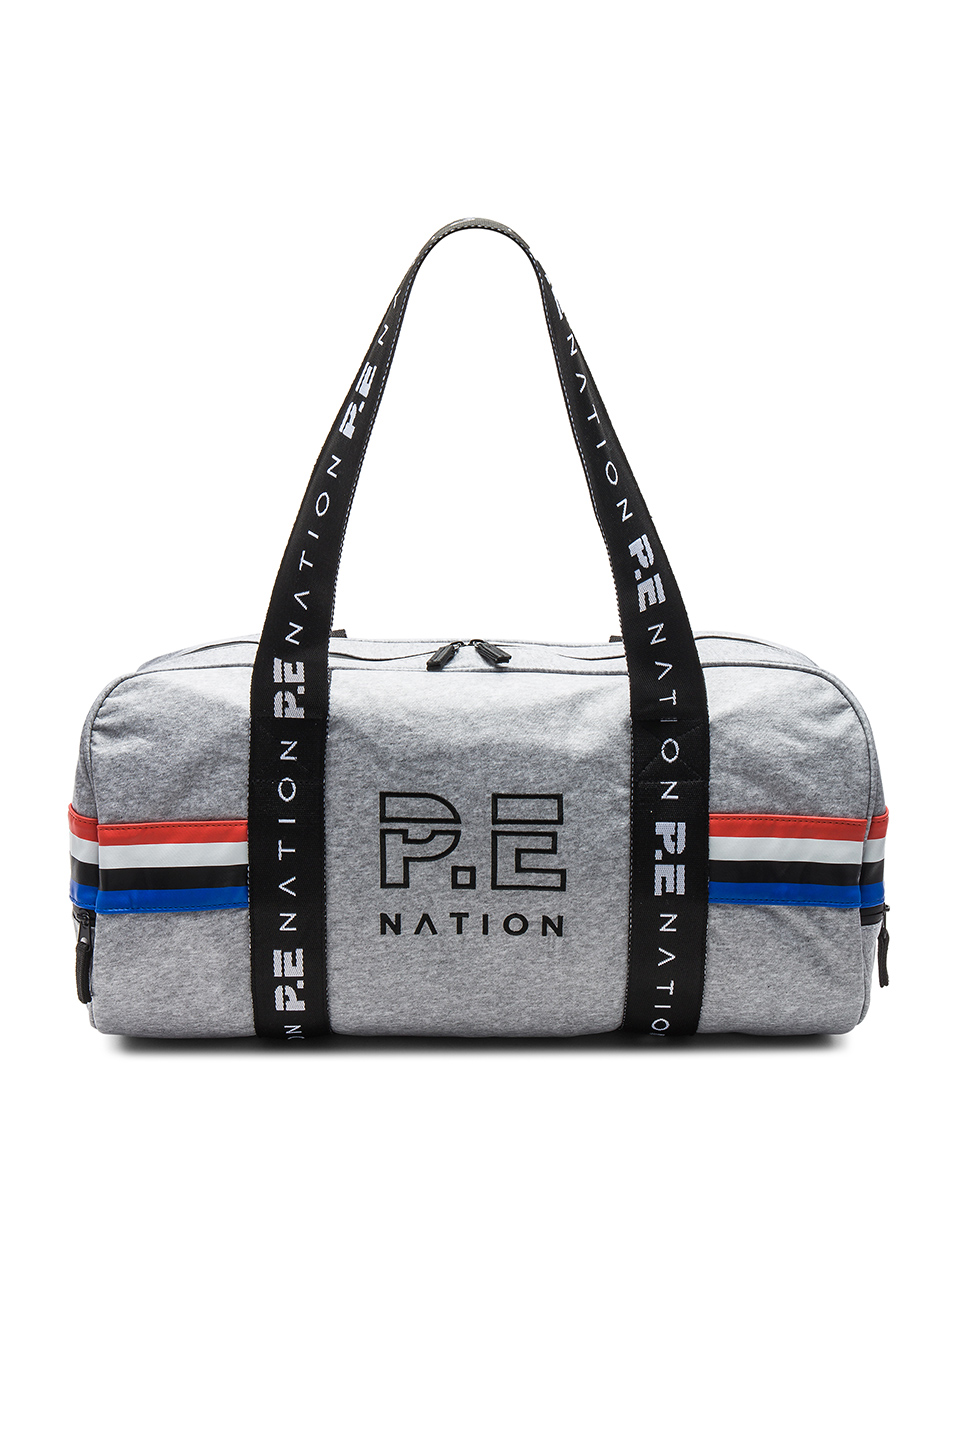 P.E Nation Final Round Duffle Bag in Grey Marl